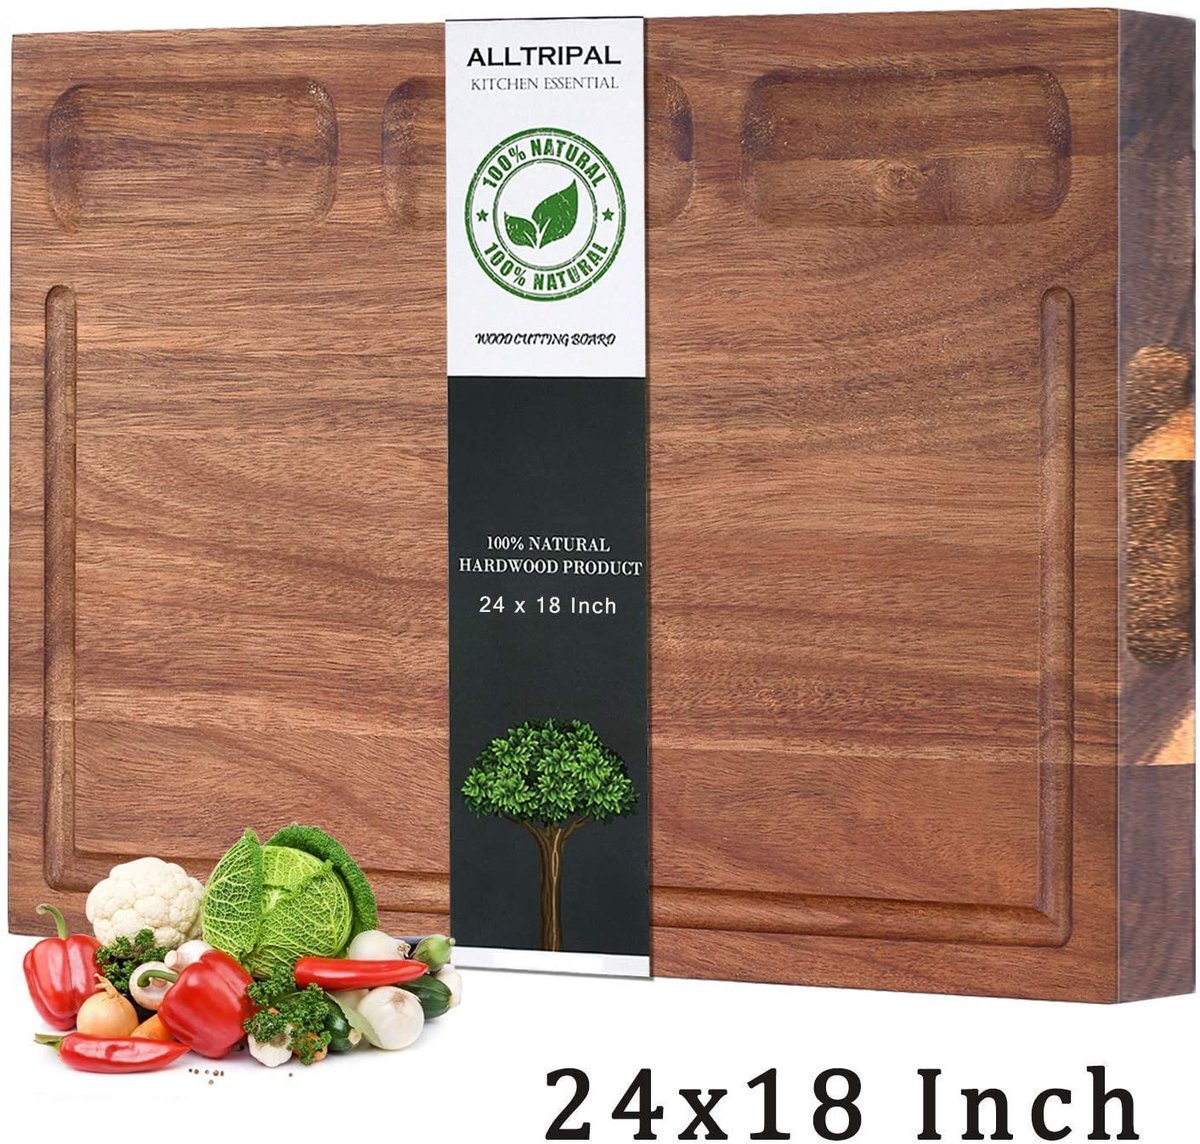 HUGE Extra Large Cutting Board, starting at $23!                    Use promo code; 4PXZWX7Y      https://amzn.to/2BCAttt pic.twitter.com/WLl5CiHcII